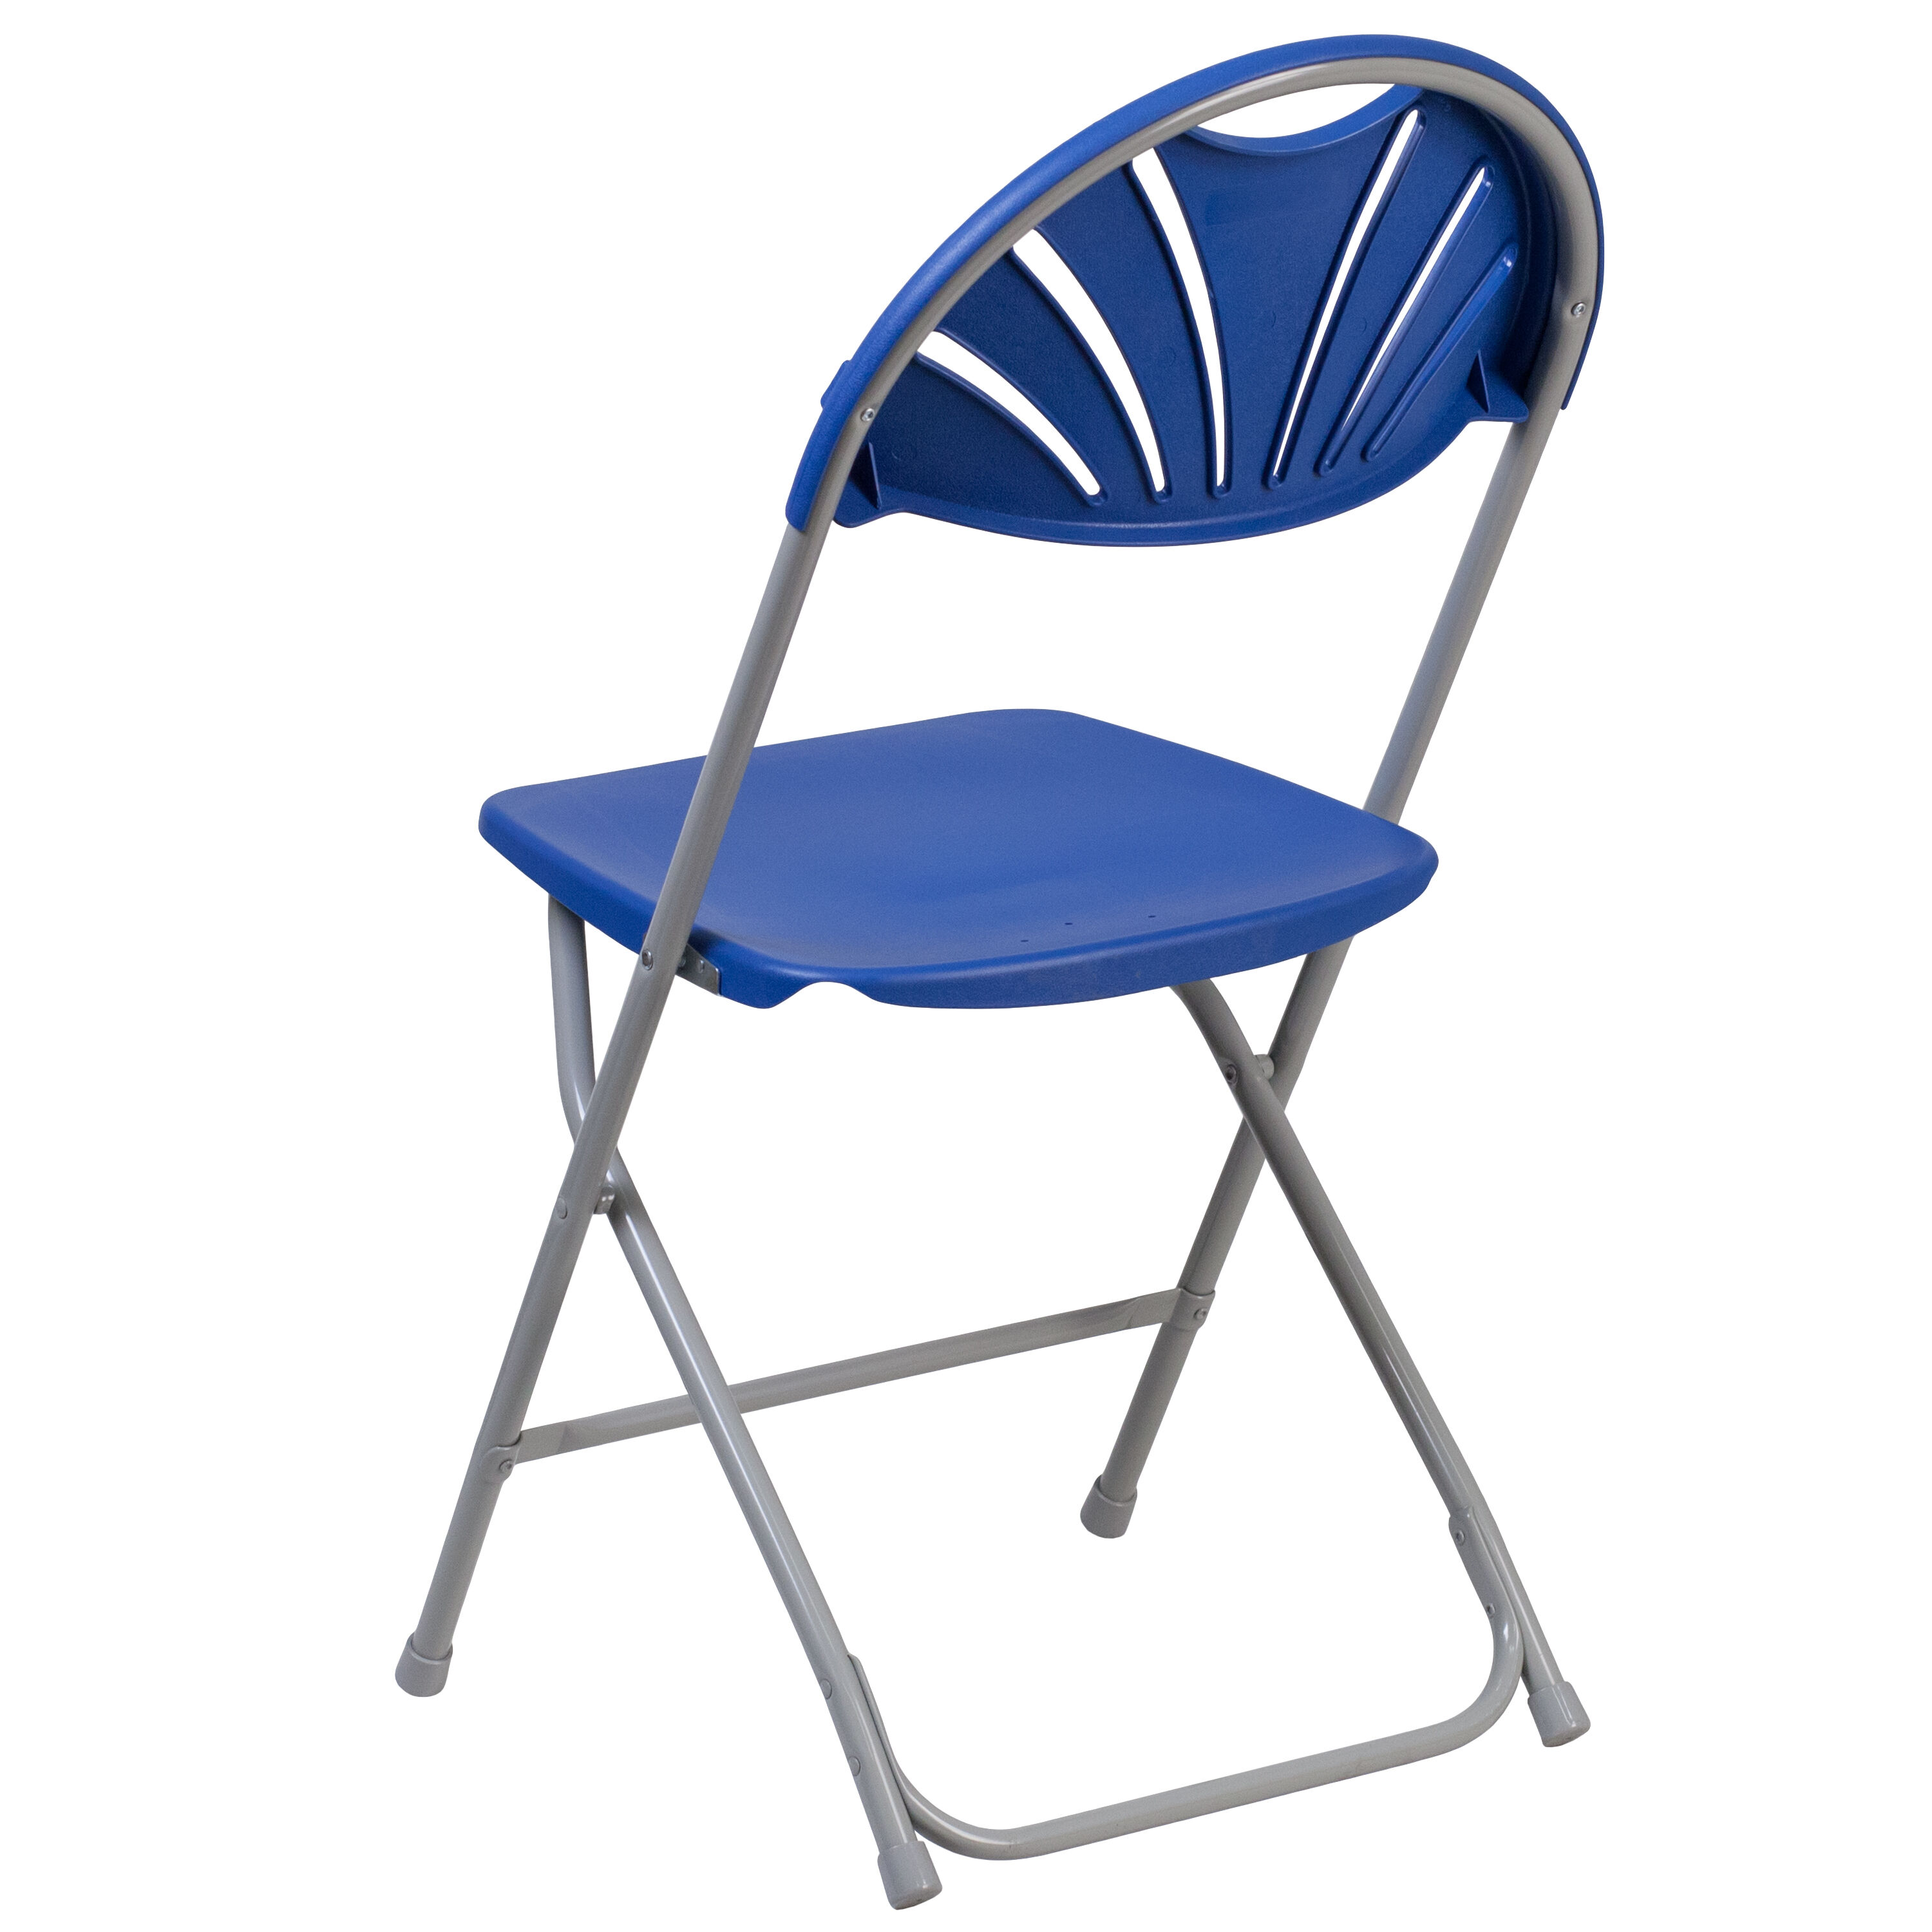 chairs 4 less romedic stand up lift chair blue plastic folding le l bl gg